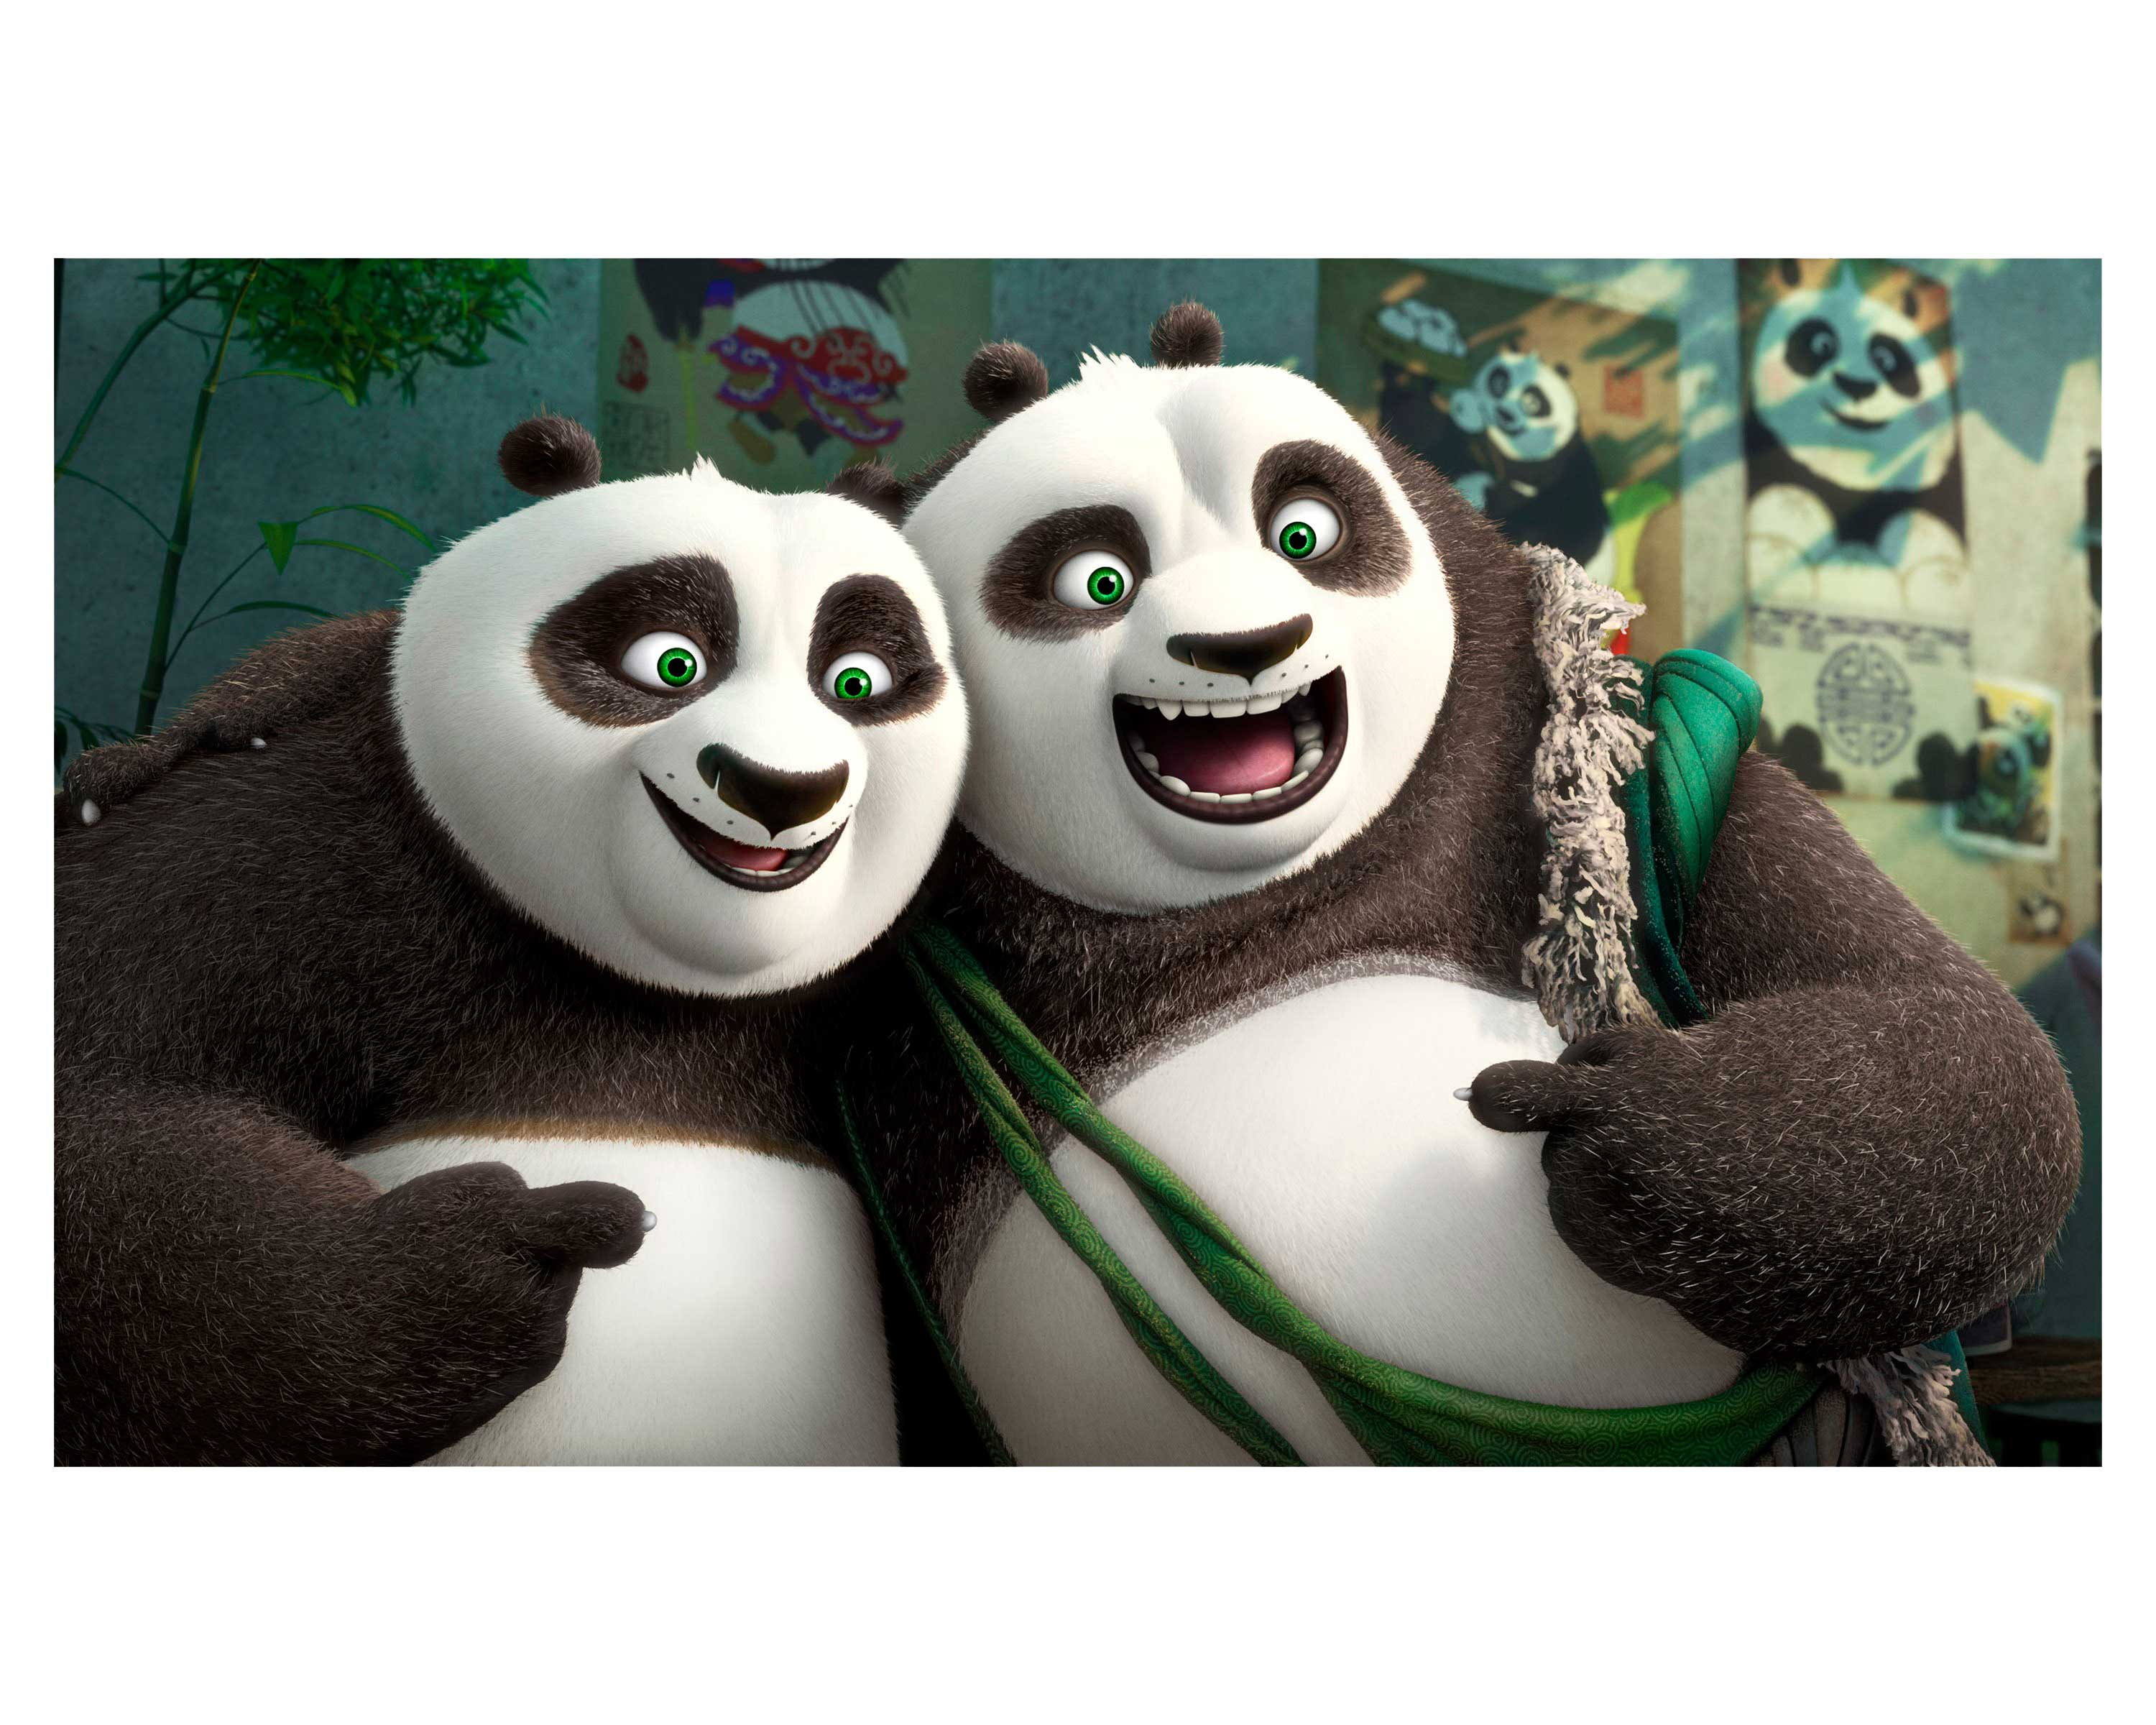 It takes an adorable village to fight evil in Kung Fu Panda3